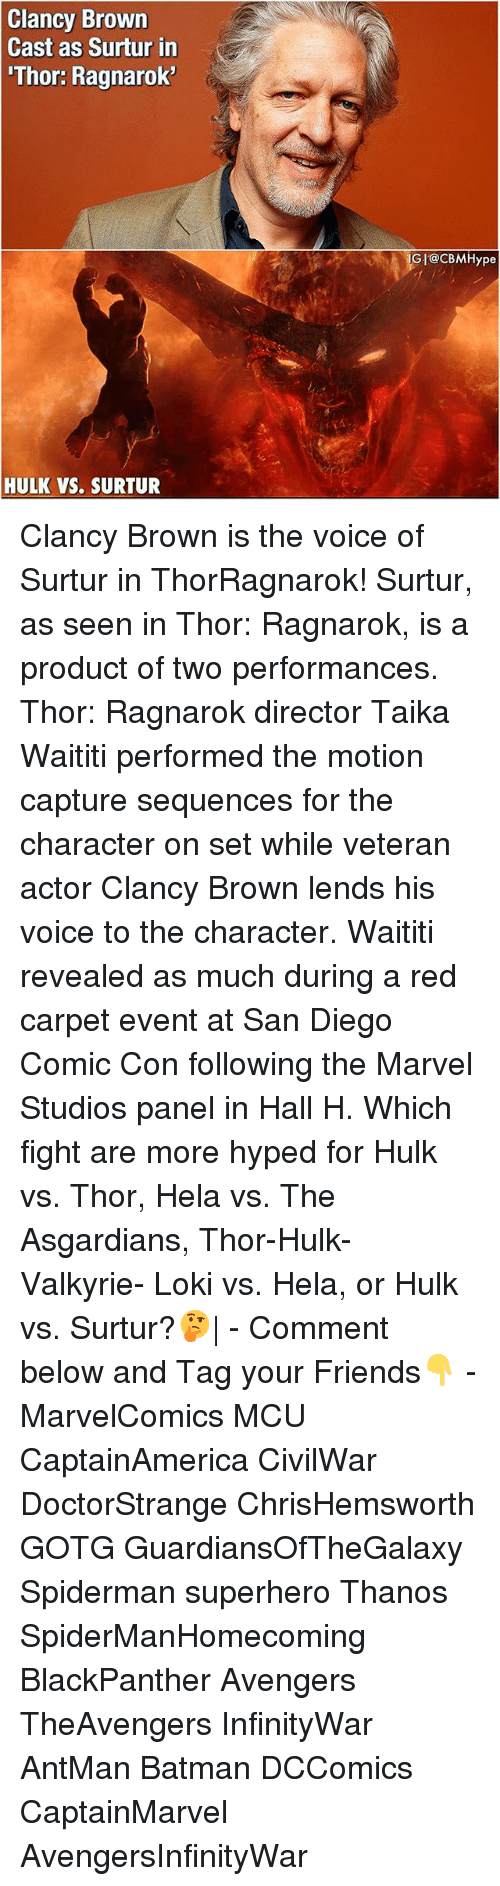 carpets: Clancy Brown  Cast as Surtur in  'Thor: Ragnarok  GI@cBMHype  HULK VS. SURTUR Clancy Brown is the voice of Surtur in ThorRagnarok! Surtur, as seen in Thor: Ragnarok, is a product of two performances. Thor: Ragnarok director Taika Waititi performed the motion capture sequences for the character on set while veteran actor Clancy Brown lends his voice to the character. Waititi revealed as much during a red carpet event at San Diego Comic Con following the Marvel Studios panel in Hall H. Which fight are more hyped for Hulk vs. Thor, Hela vs. The Asgardians, Thor-Hulk- Valkyrie- Loki vs. Hela, or Hulk vs. Surtur?🤔  - Comment below and Tag your Friends👇 - MarvelComics MCU CaptainAmerica CivilWar DoctorStrange ChrisHemsworth GOTG GuardiansOfTheGalaxy Spiderman superhero Thanos SpiderManHomecoming BlackPanther Avengers TheAvengers InfinityWar AntMan Batman DCComics CaptainMarvel AvengersInfinityWar